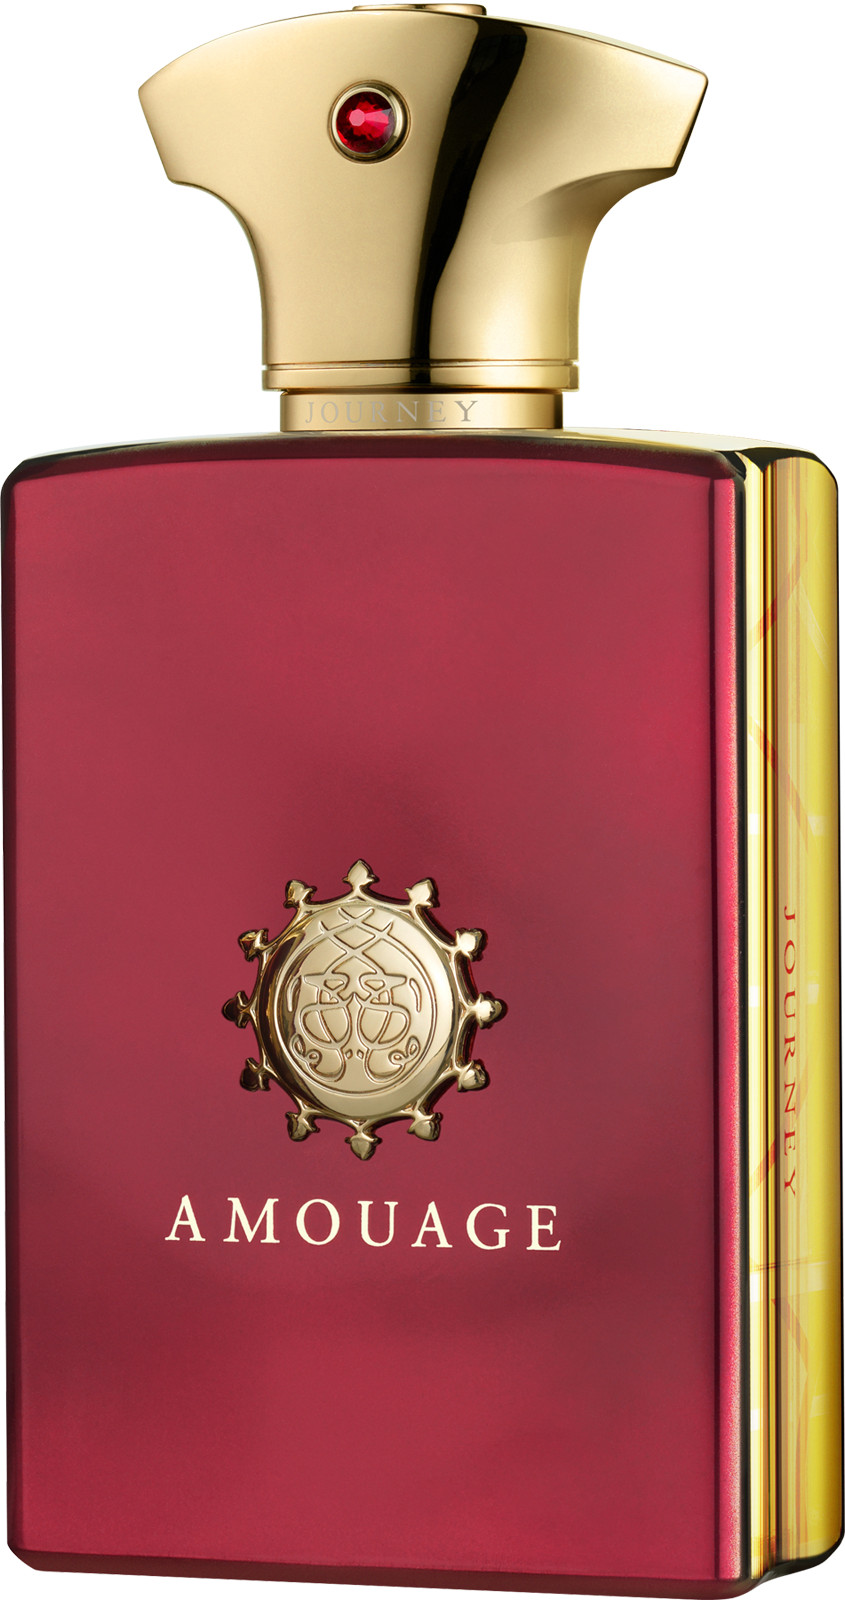 Best In Show Amouage 2018 Parfum Original Reflection For Men A King Resides The Land Of Aromatics And That Is Journey Man Also Known As Made Distinct Turn Away From Safer